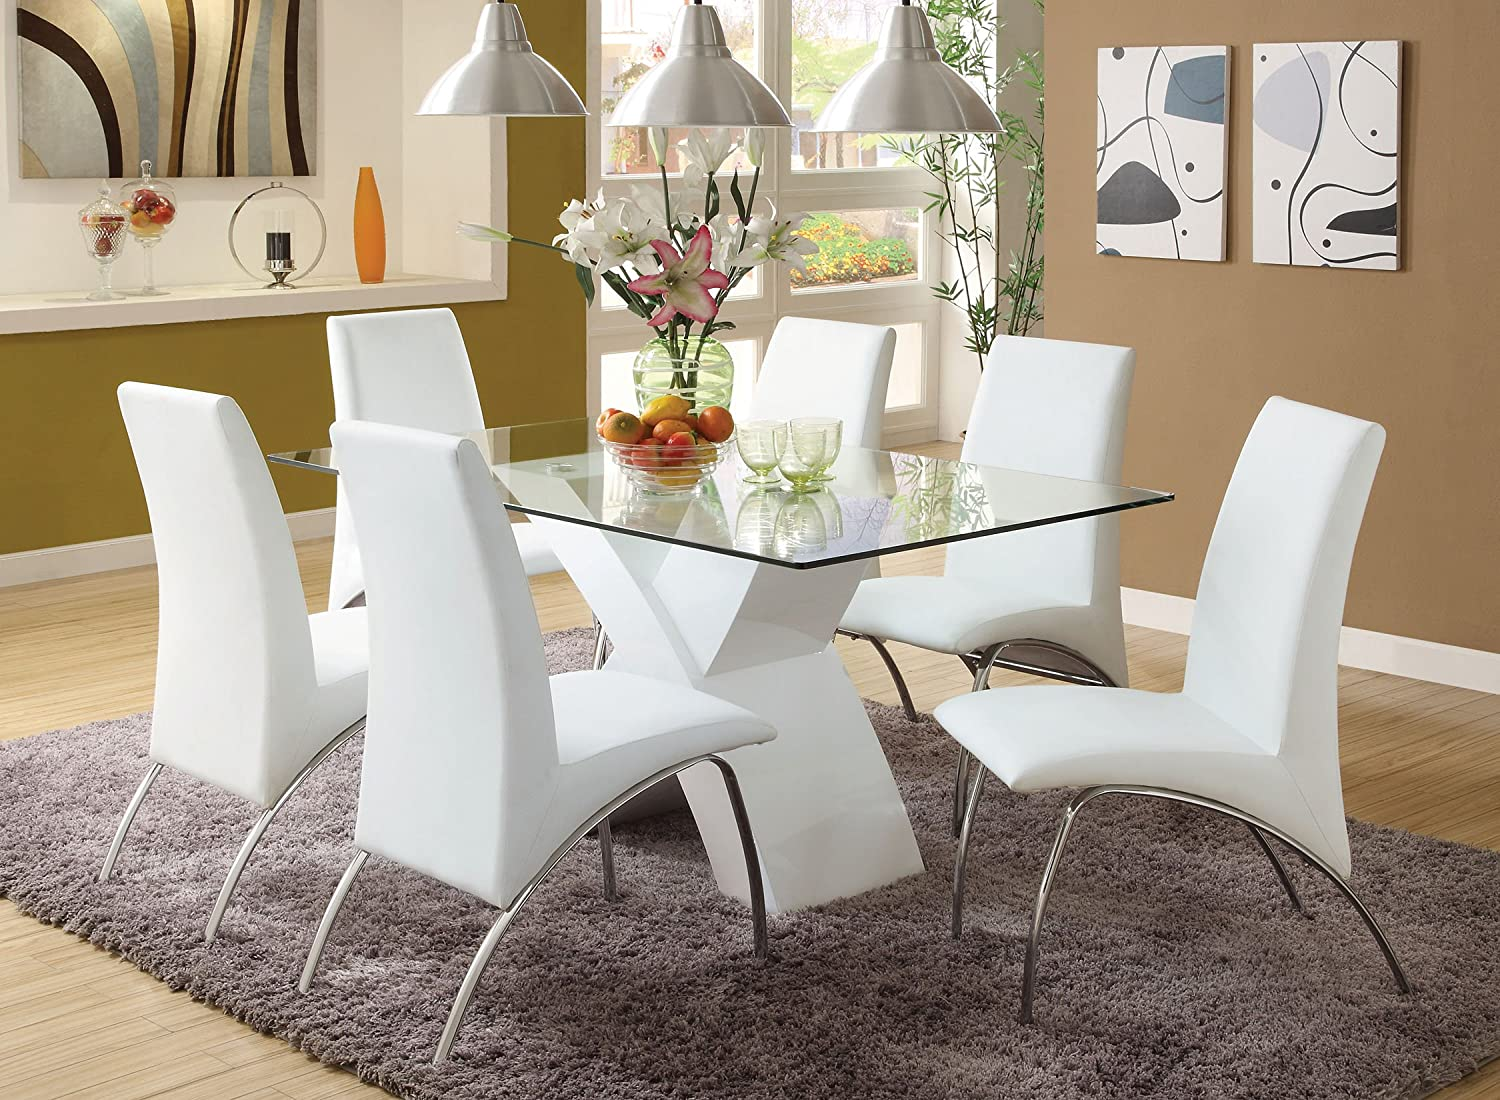 Amazon com  Furniture of America Rivendale 7 Piece Modern Dining Table Set  with 12mm Tempered Glass Top  White Finish  Kitchen   Dining. Amazon com  Furniture of America Rivendale 7 Piece Modern Dining